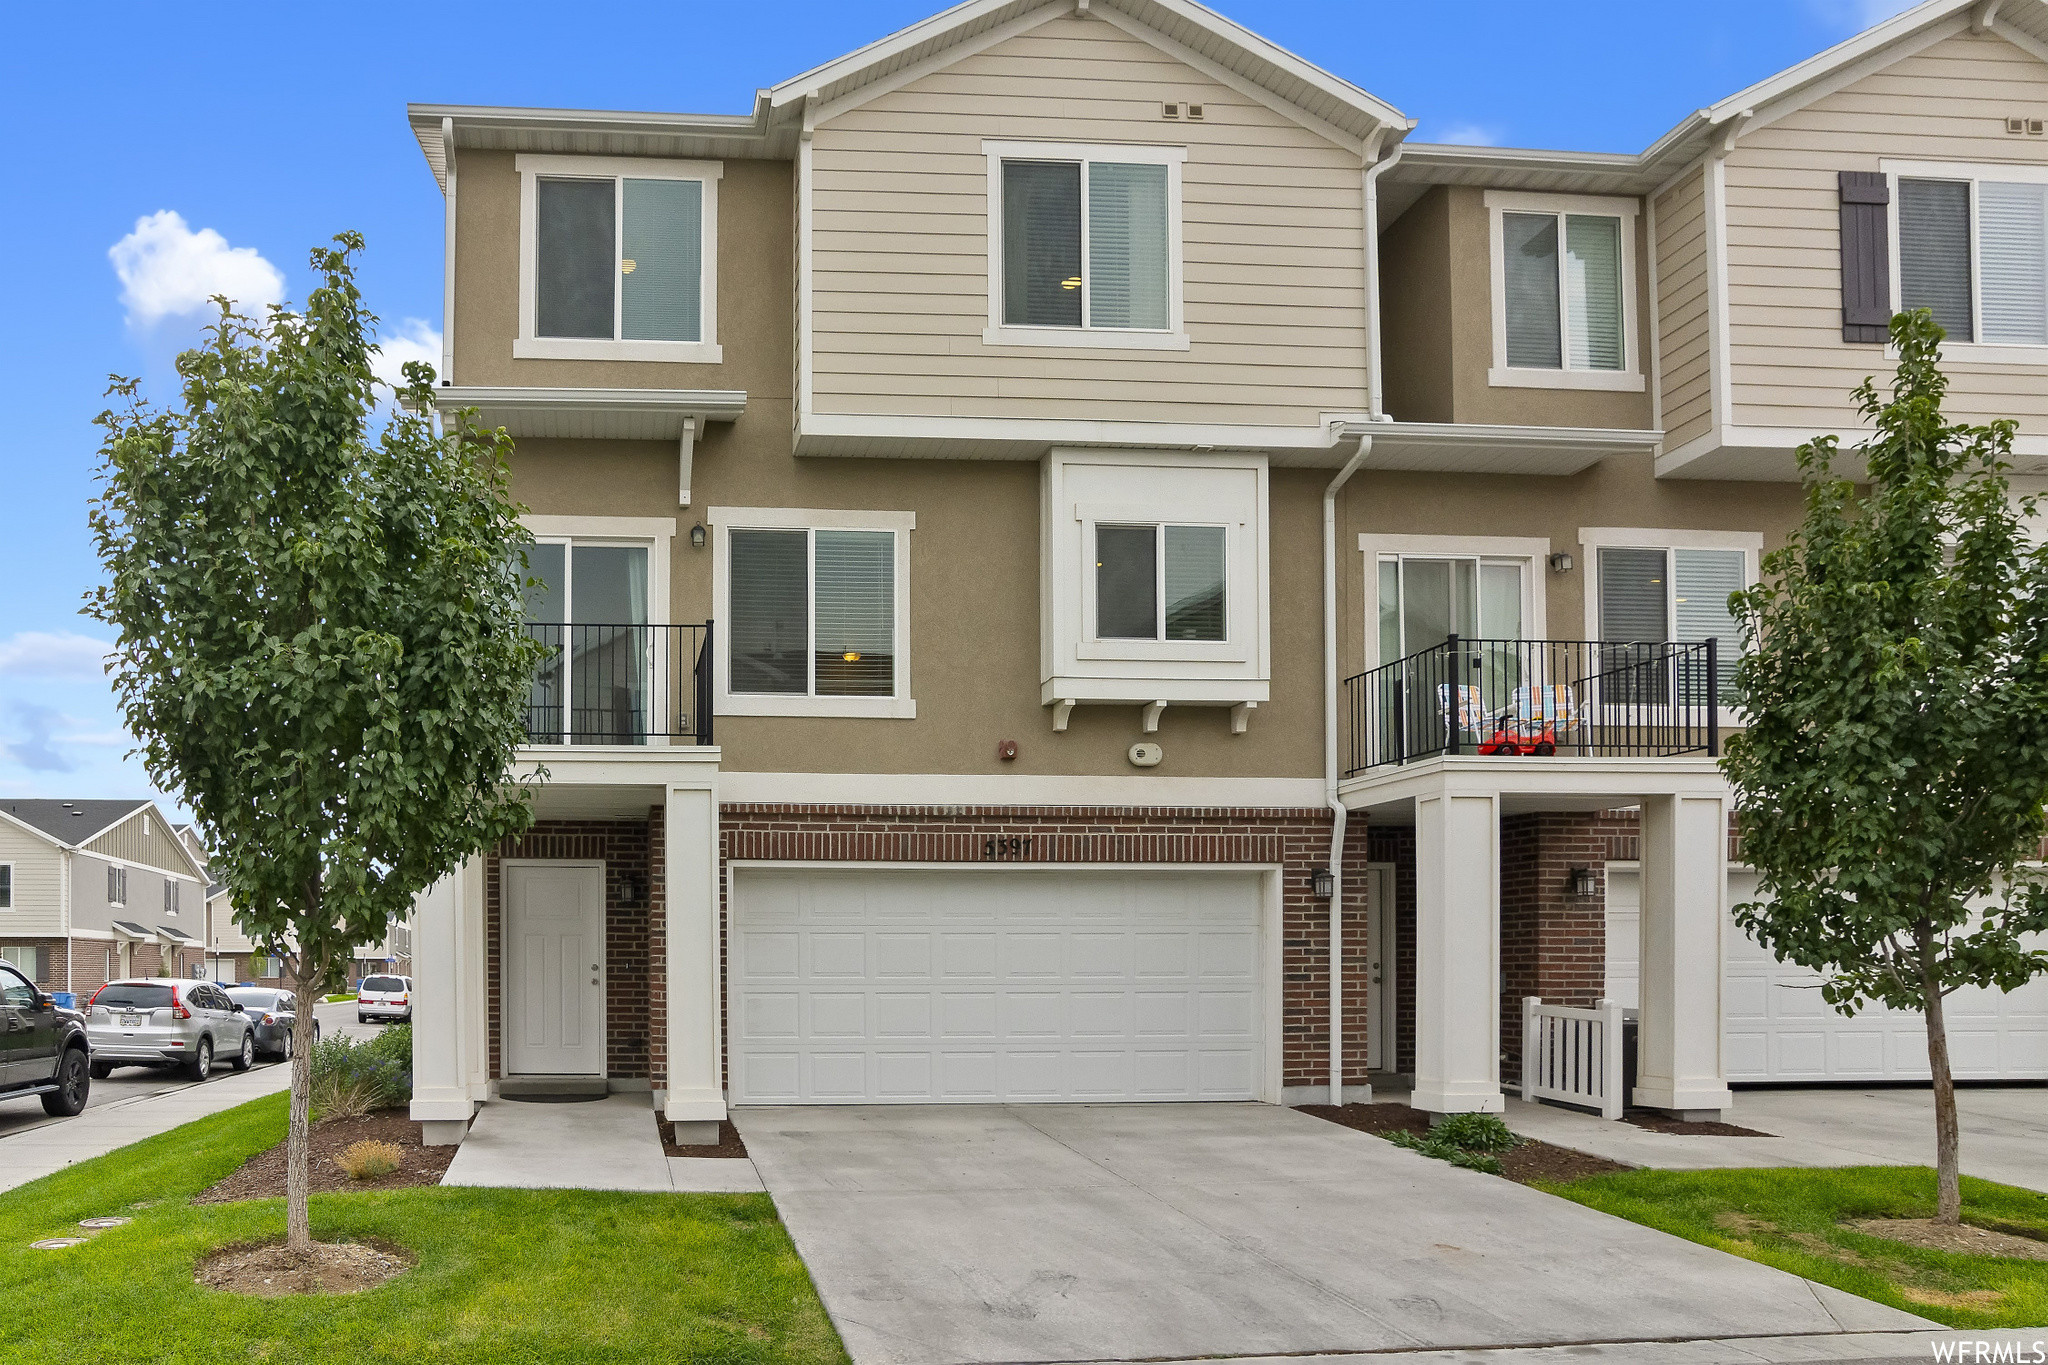 3-Story Townhouse In Fort Herriman